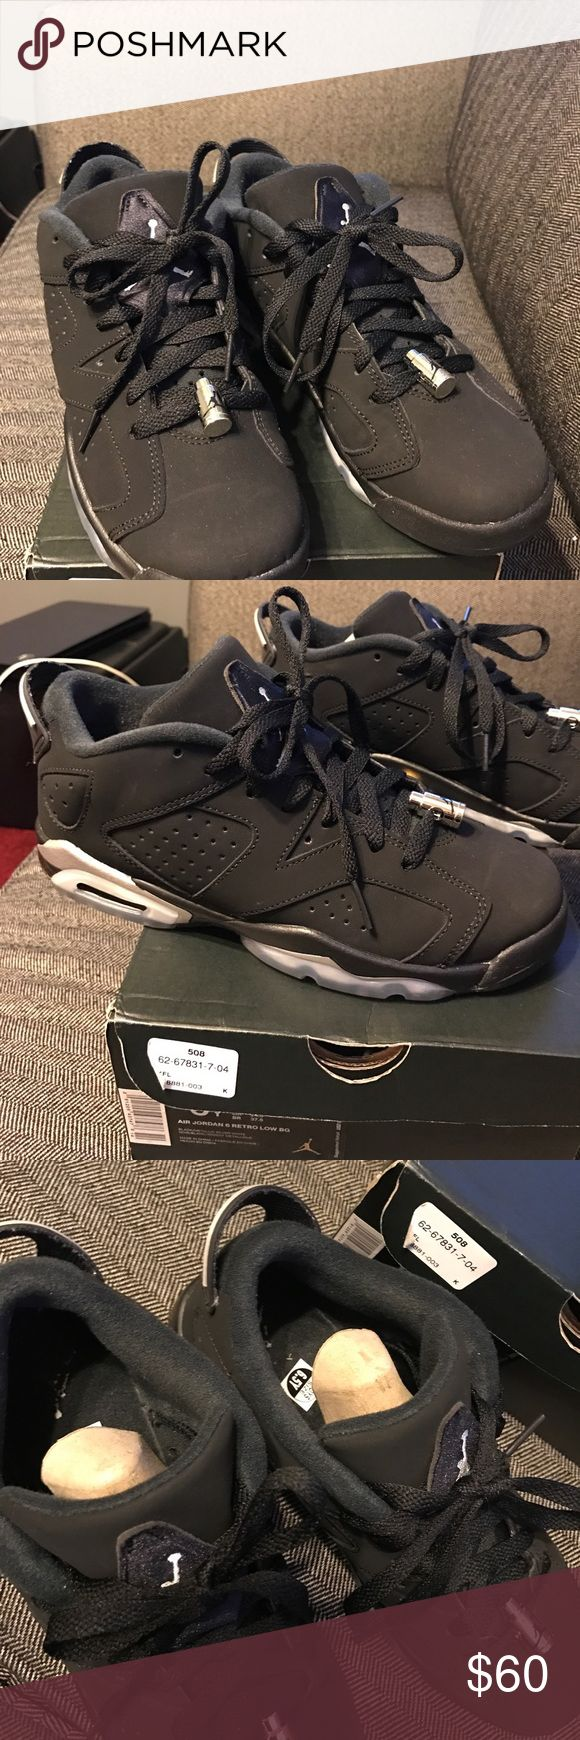 Retro 6 Jordan Low Excellent condition! Size 6.5 box and receipt included. Nike Shoes Athletic Shoes